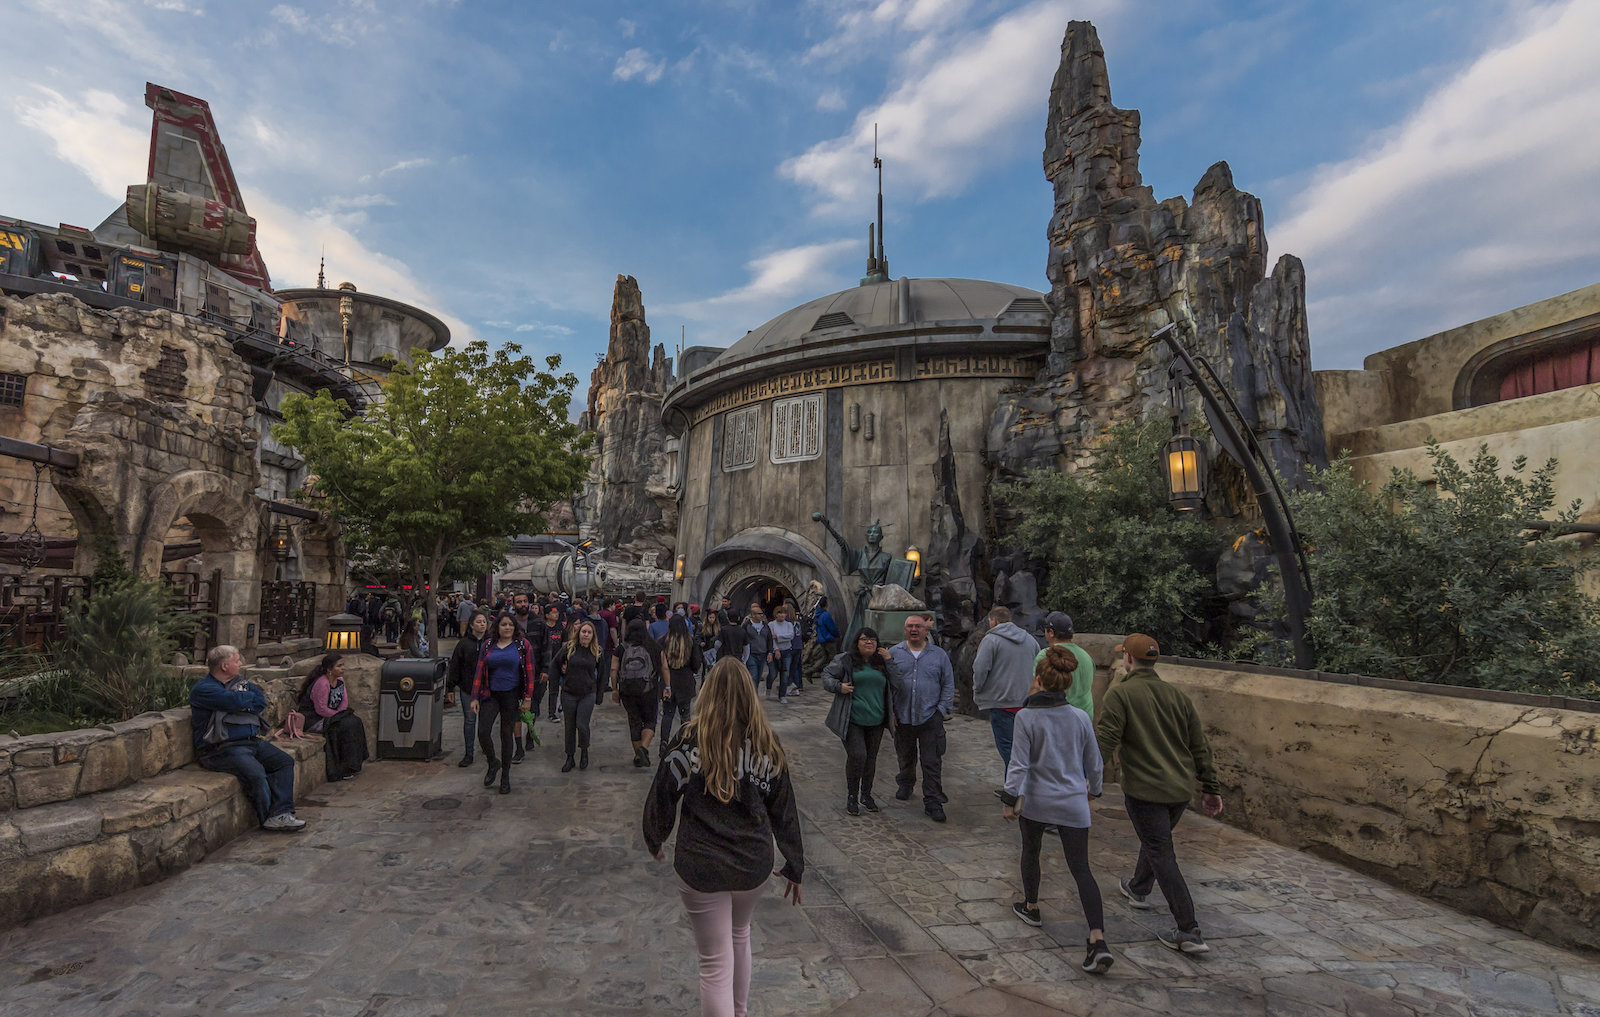 Star Wars land opens at Disneyland